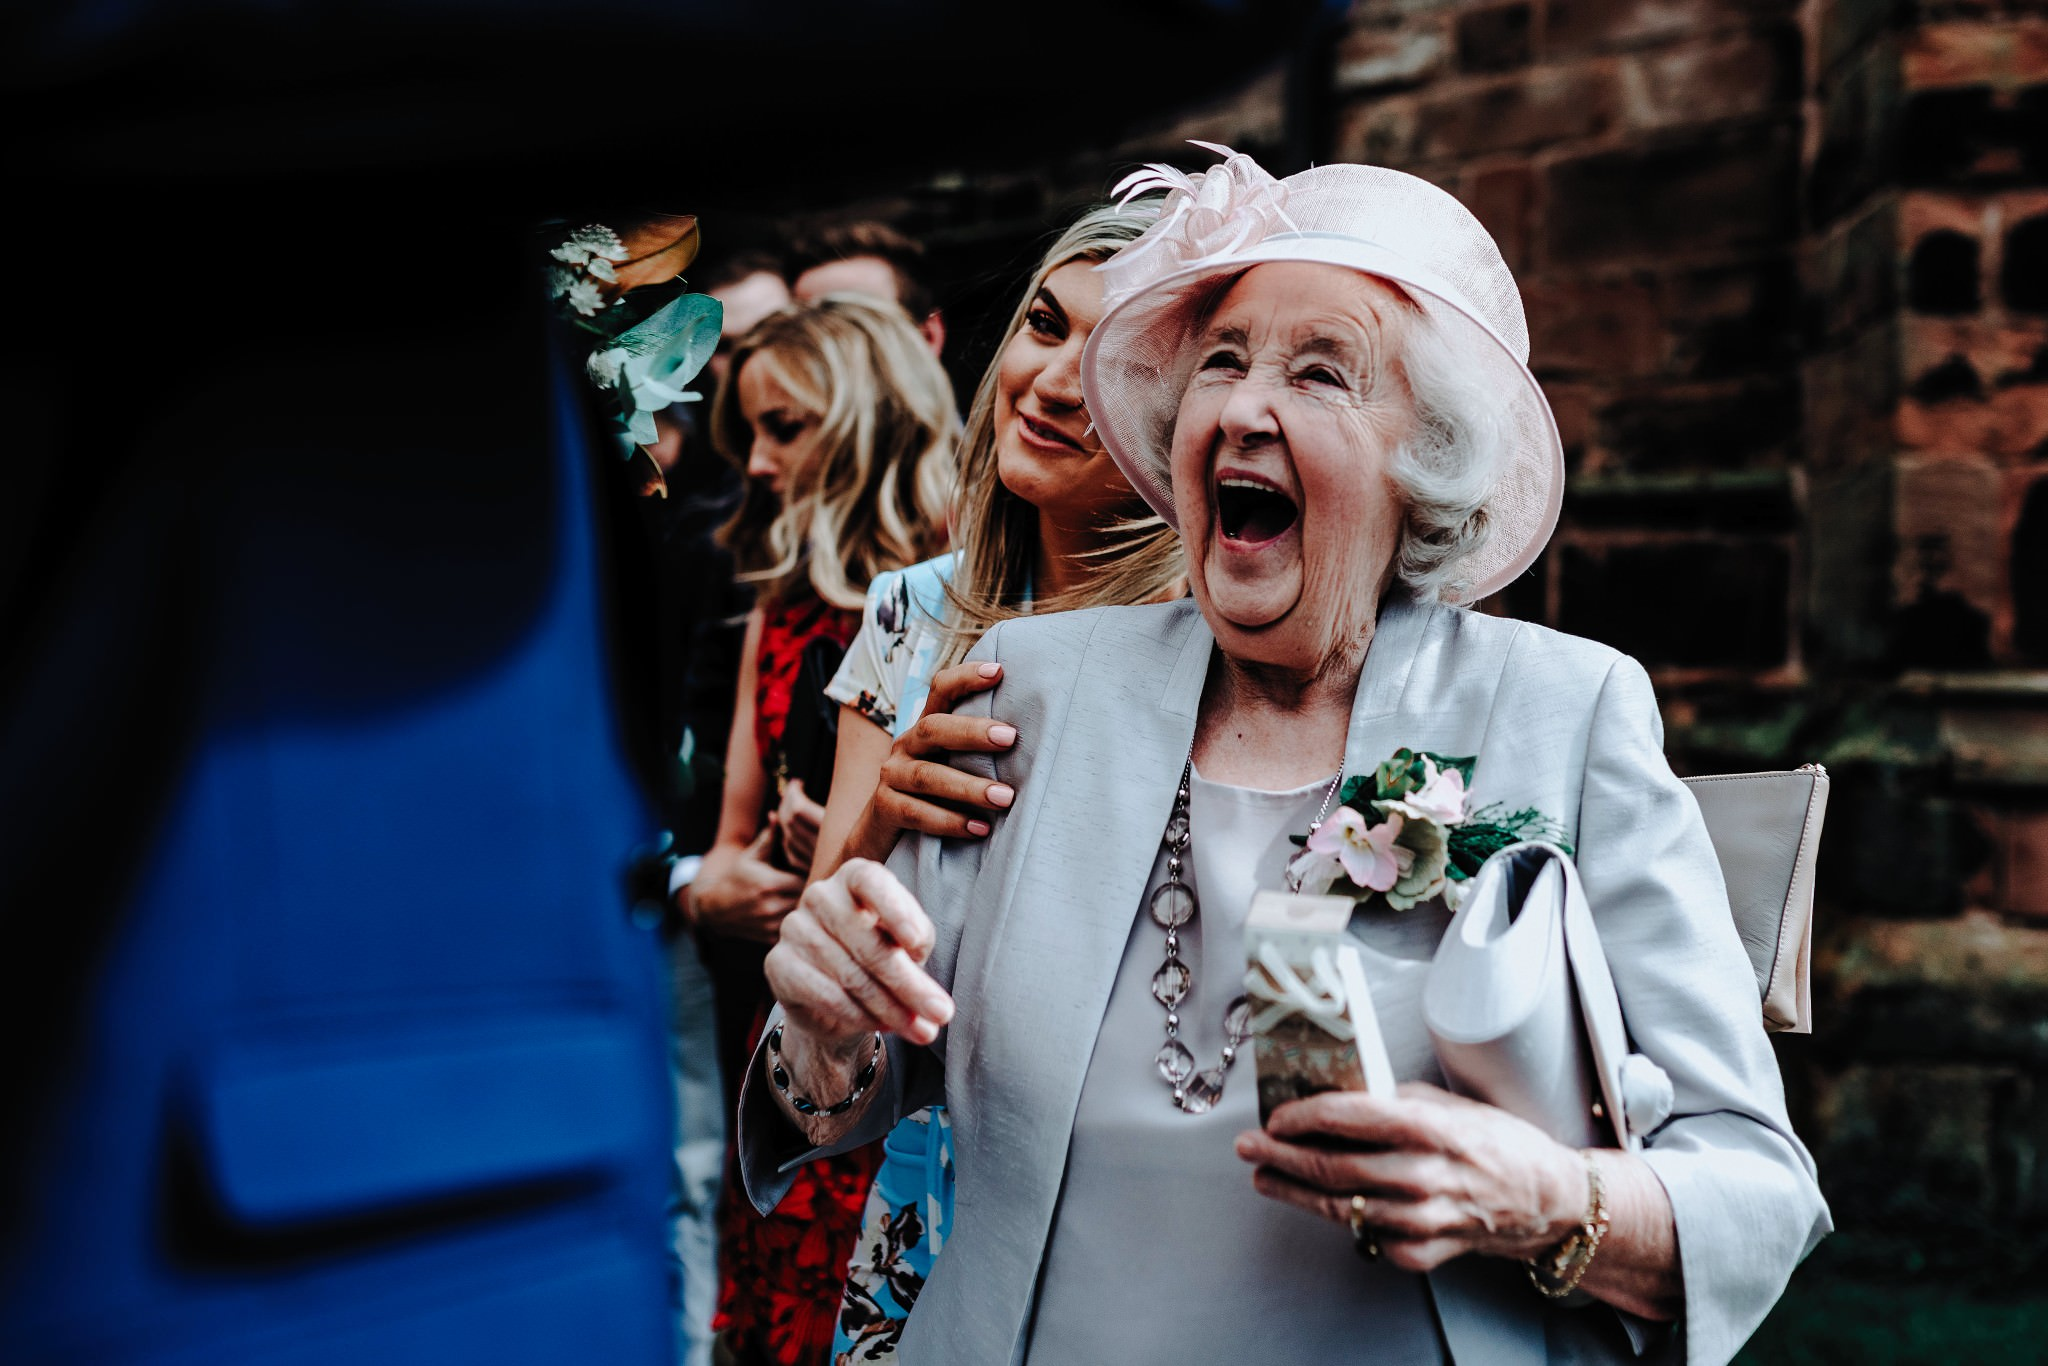 Excited Nan at a Cheshire Barn Wedding